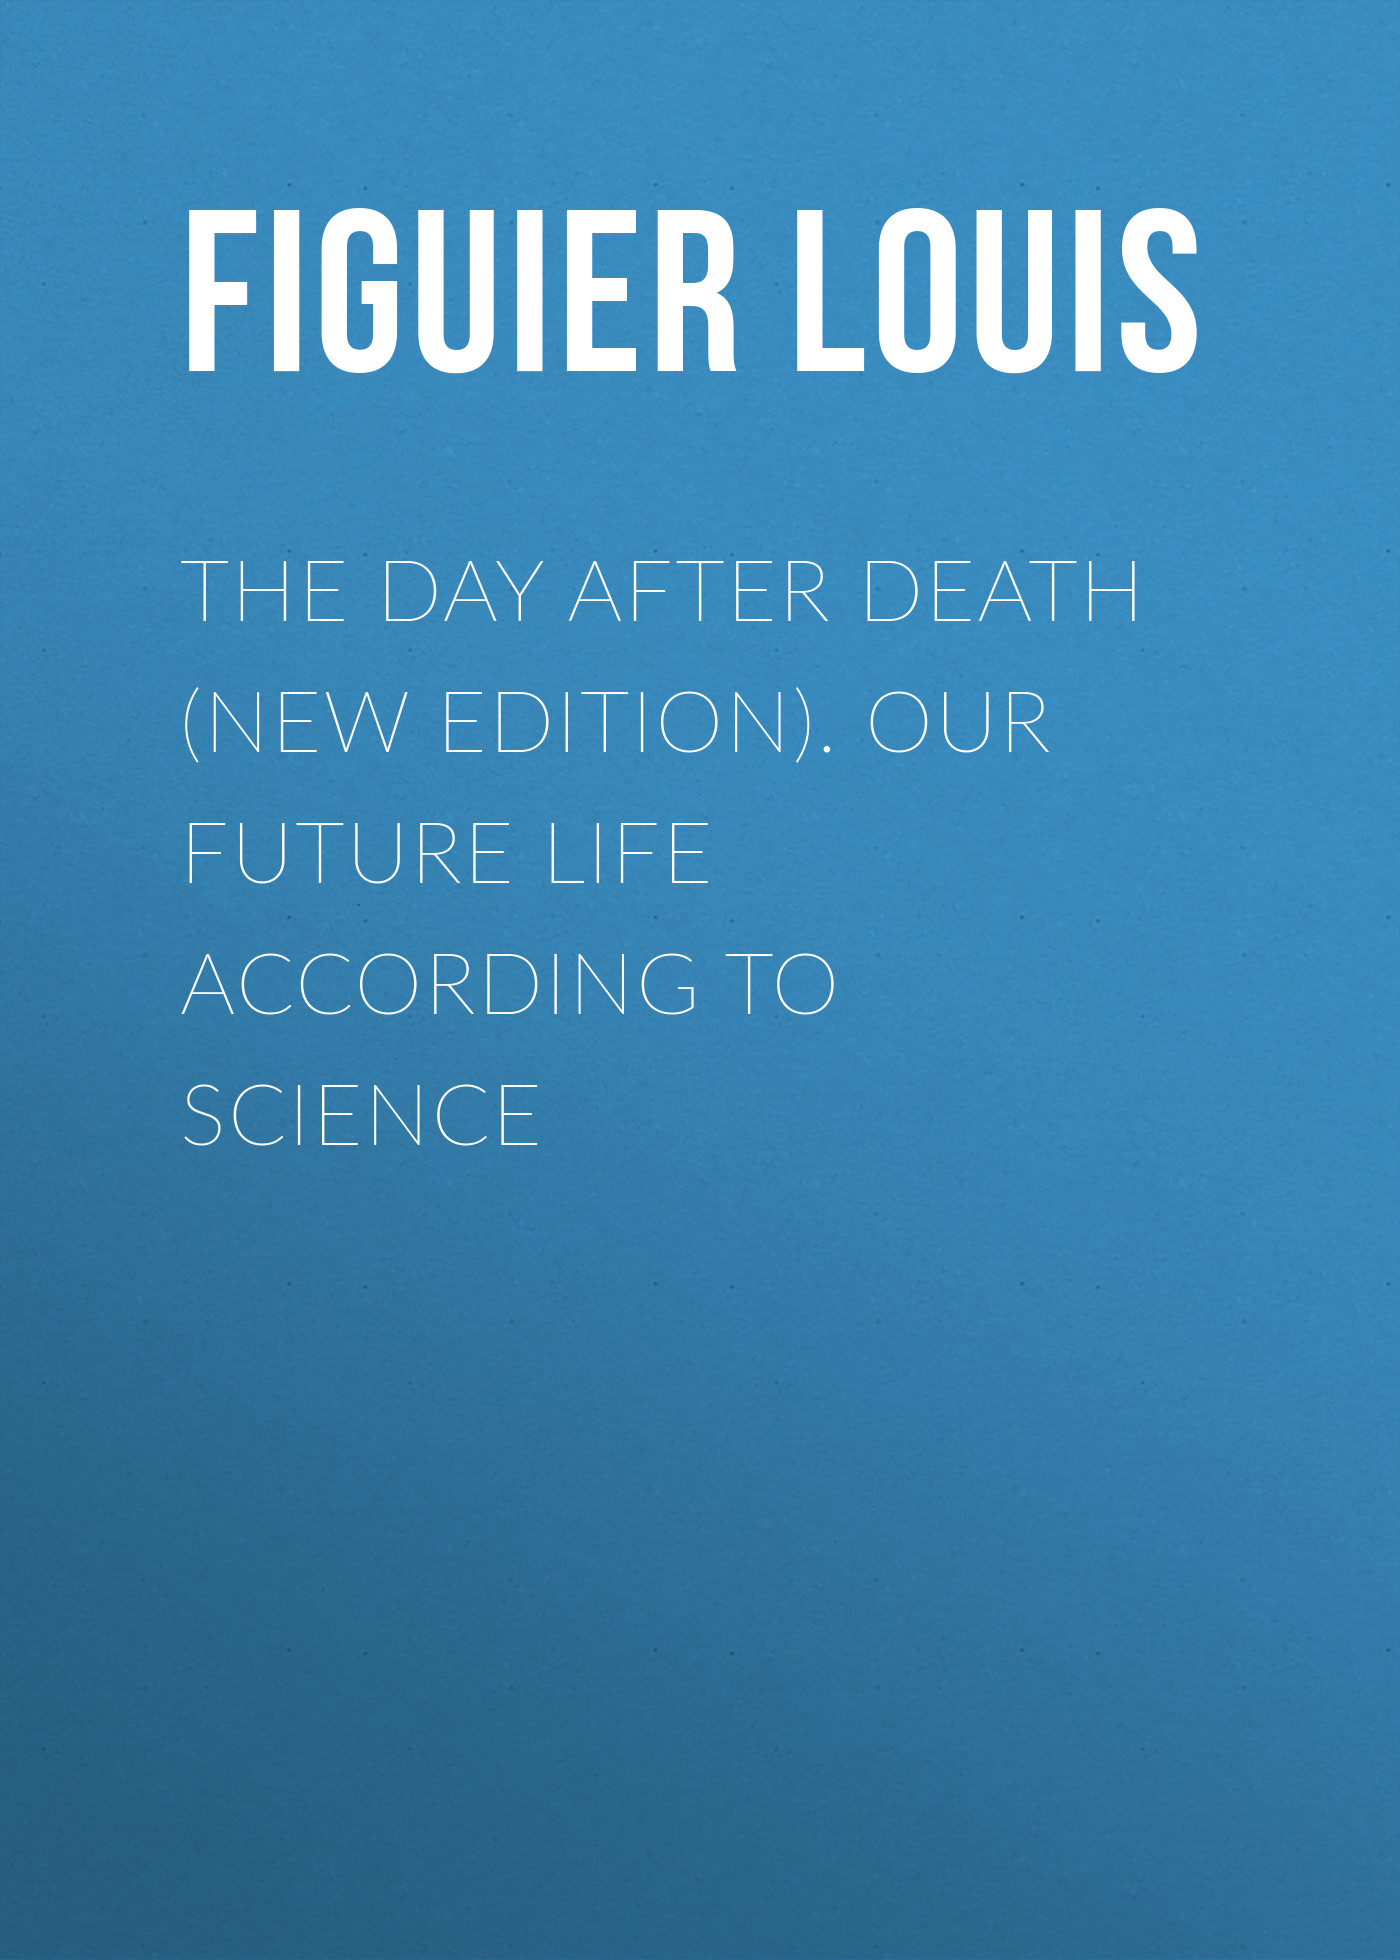 Figuier Louis The Day After Death (New Edition). Our Future Life According to Science